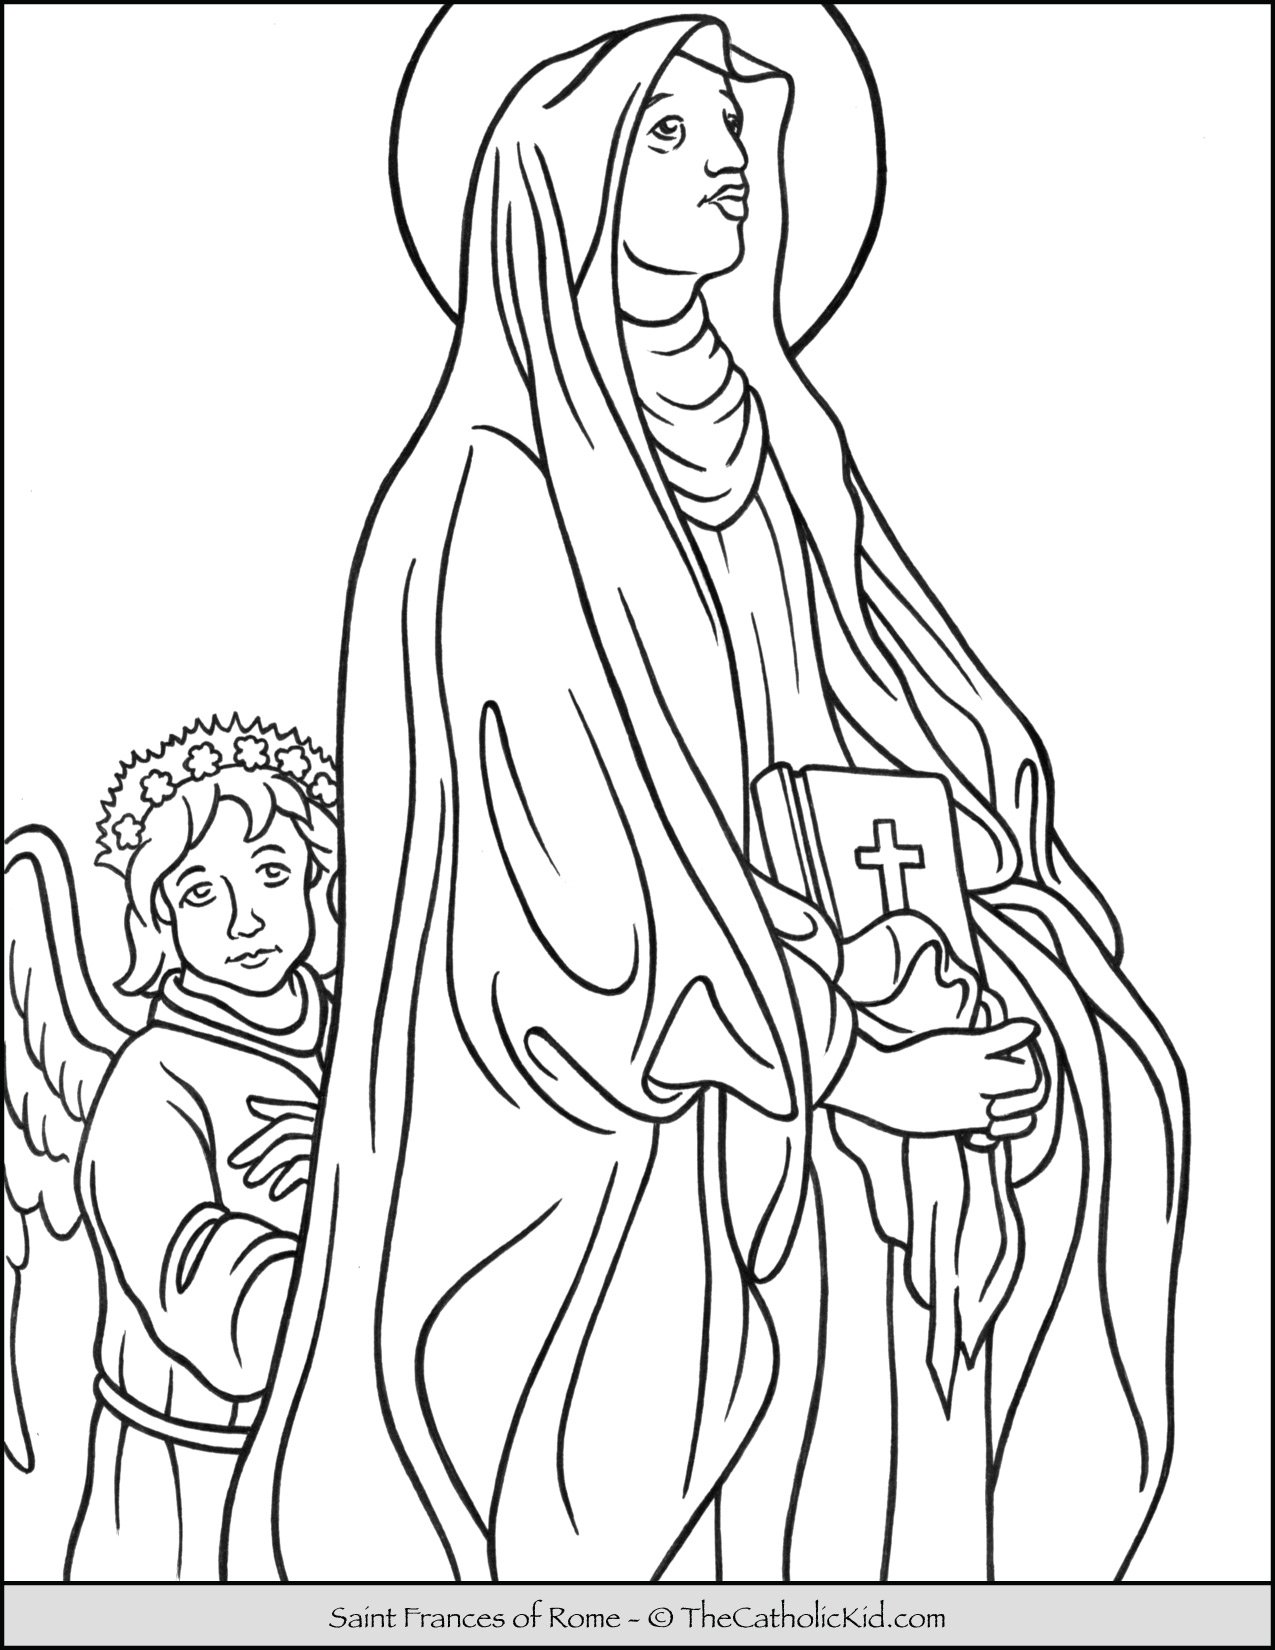 Saint Frances of Rome Coloring Page